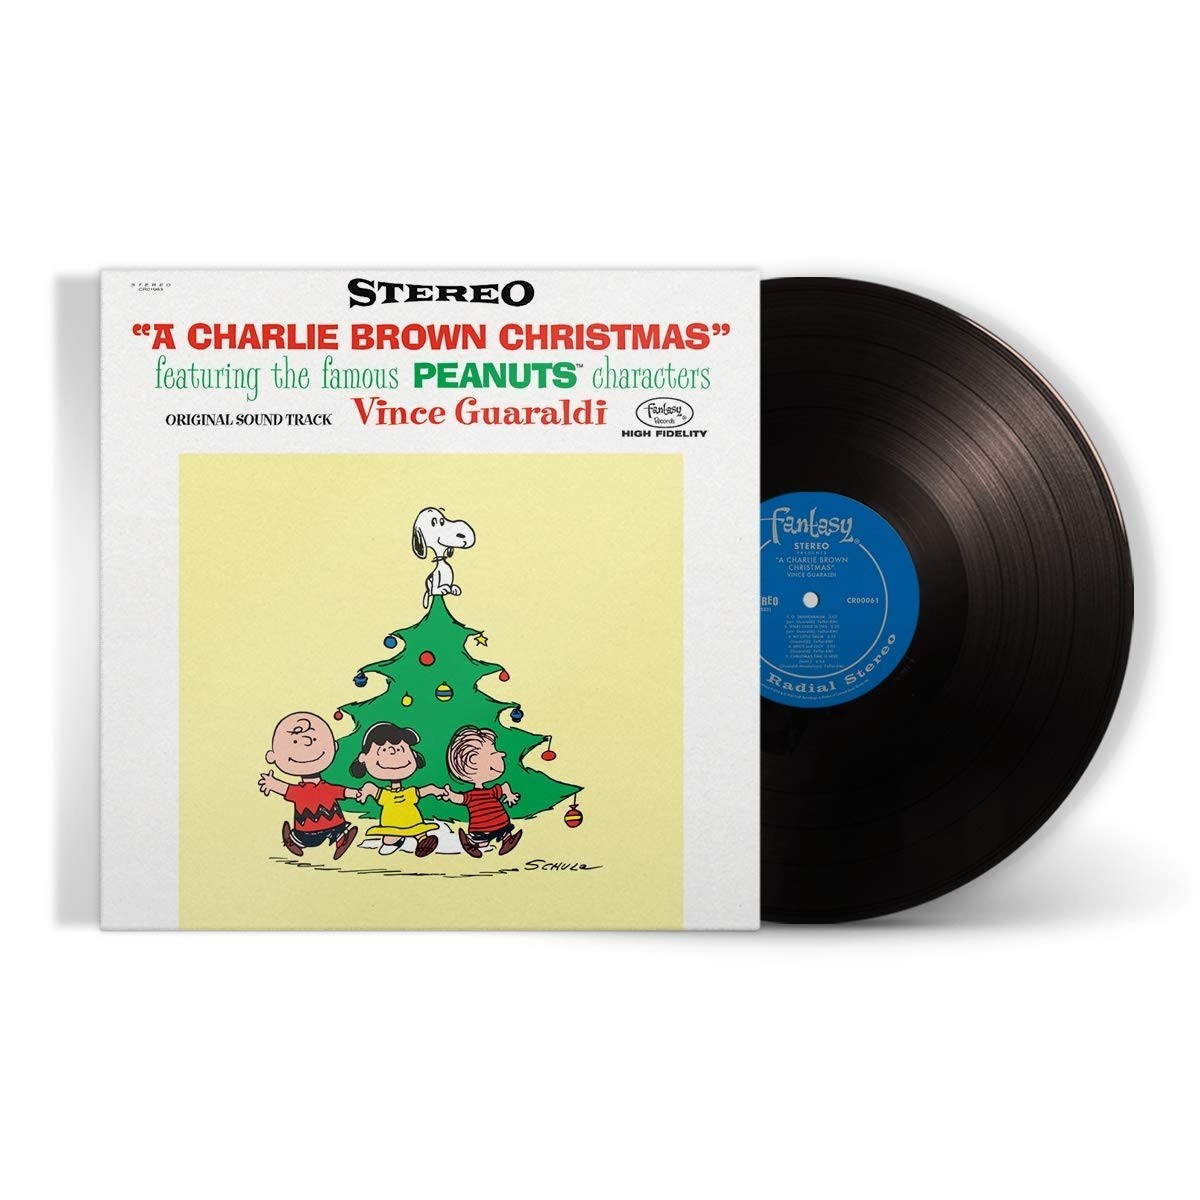 Vince Guaraldi - Charlie Brown Christmas (70th Anniversary Lenticular) Vinyl LP